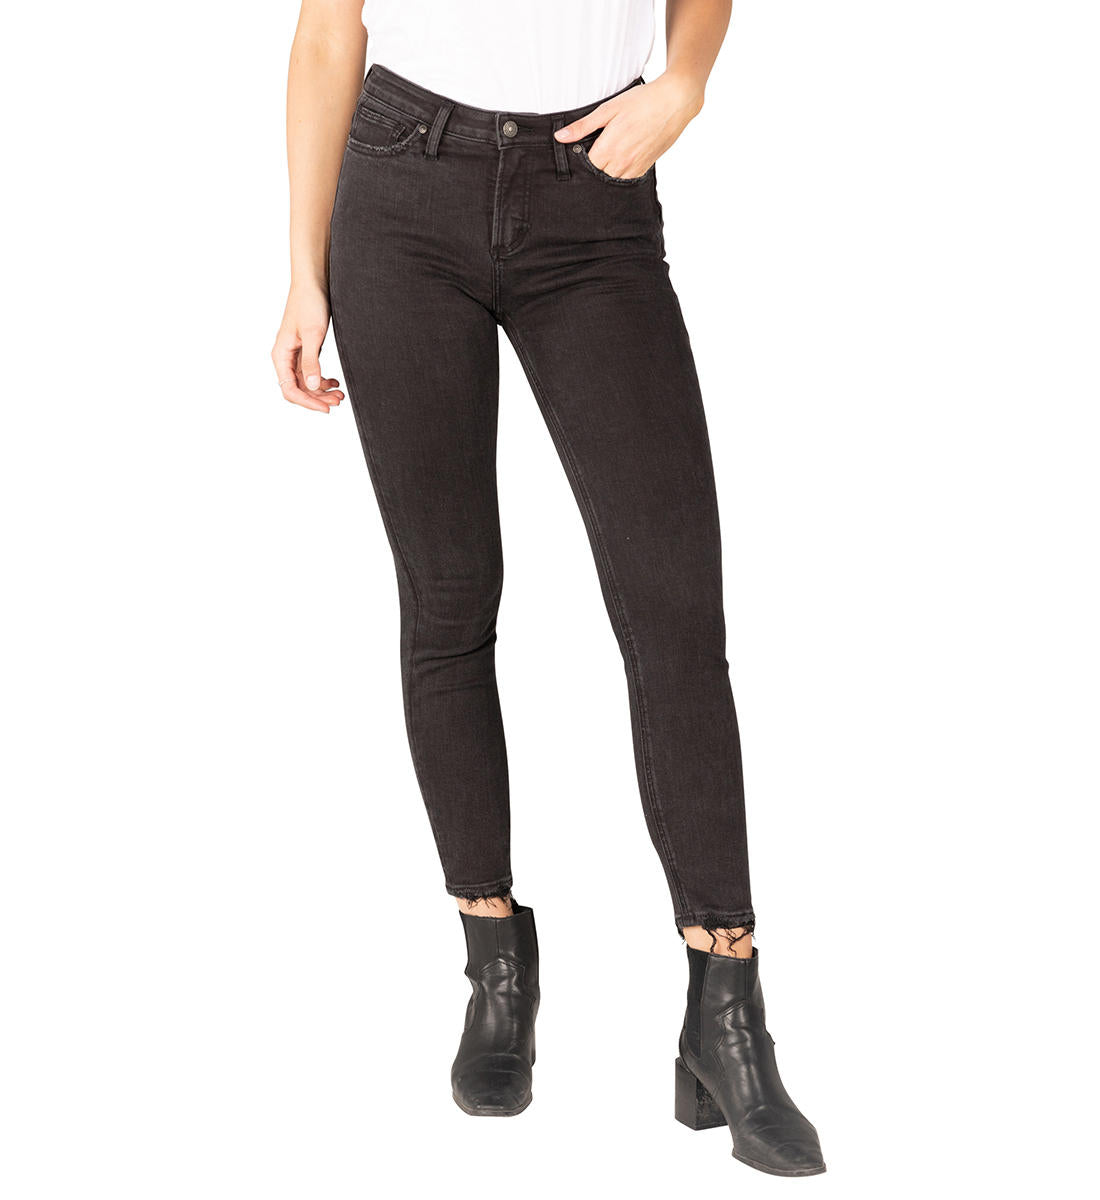 SILVER JEANS LADIES HIGH NOTE HIGH RISE SKINNY BLACK JEANS